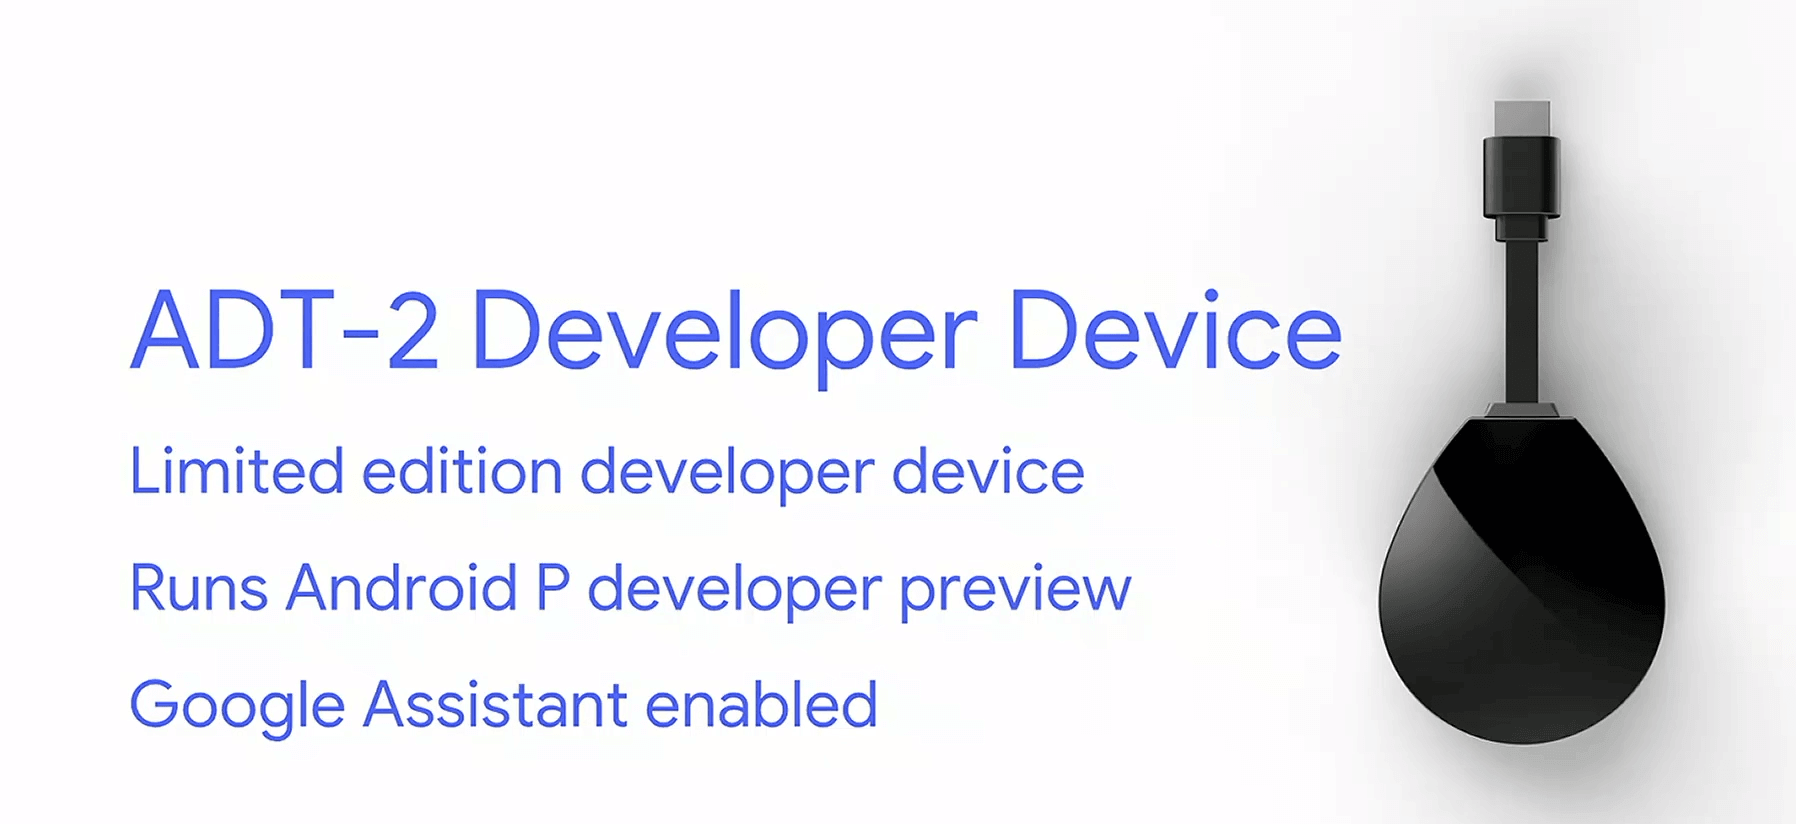 ADT-2 Android TV Developer Device